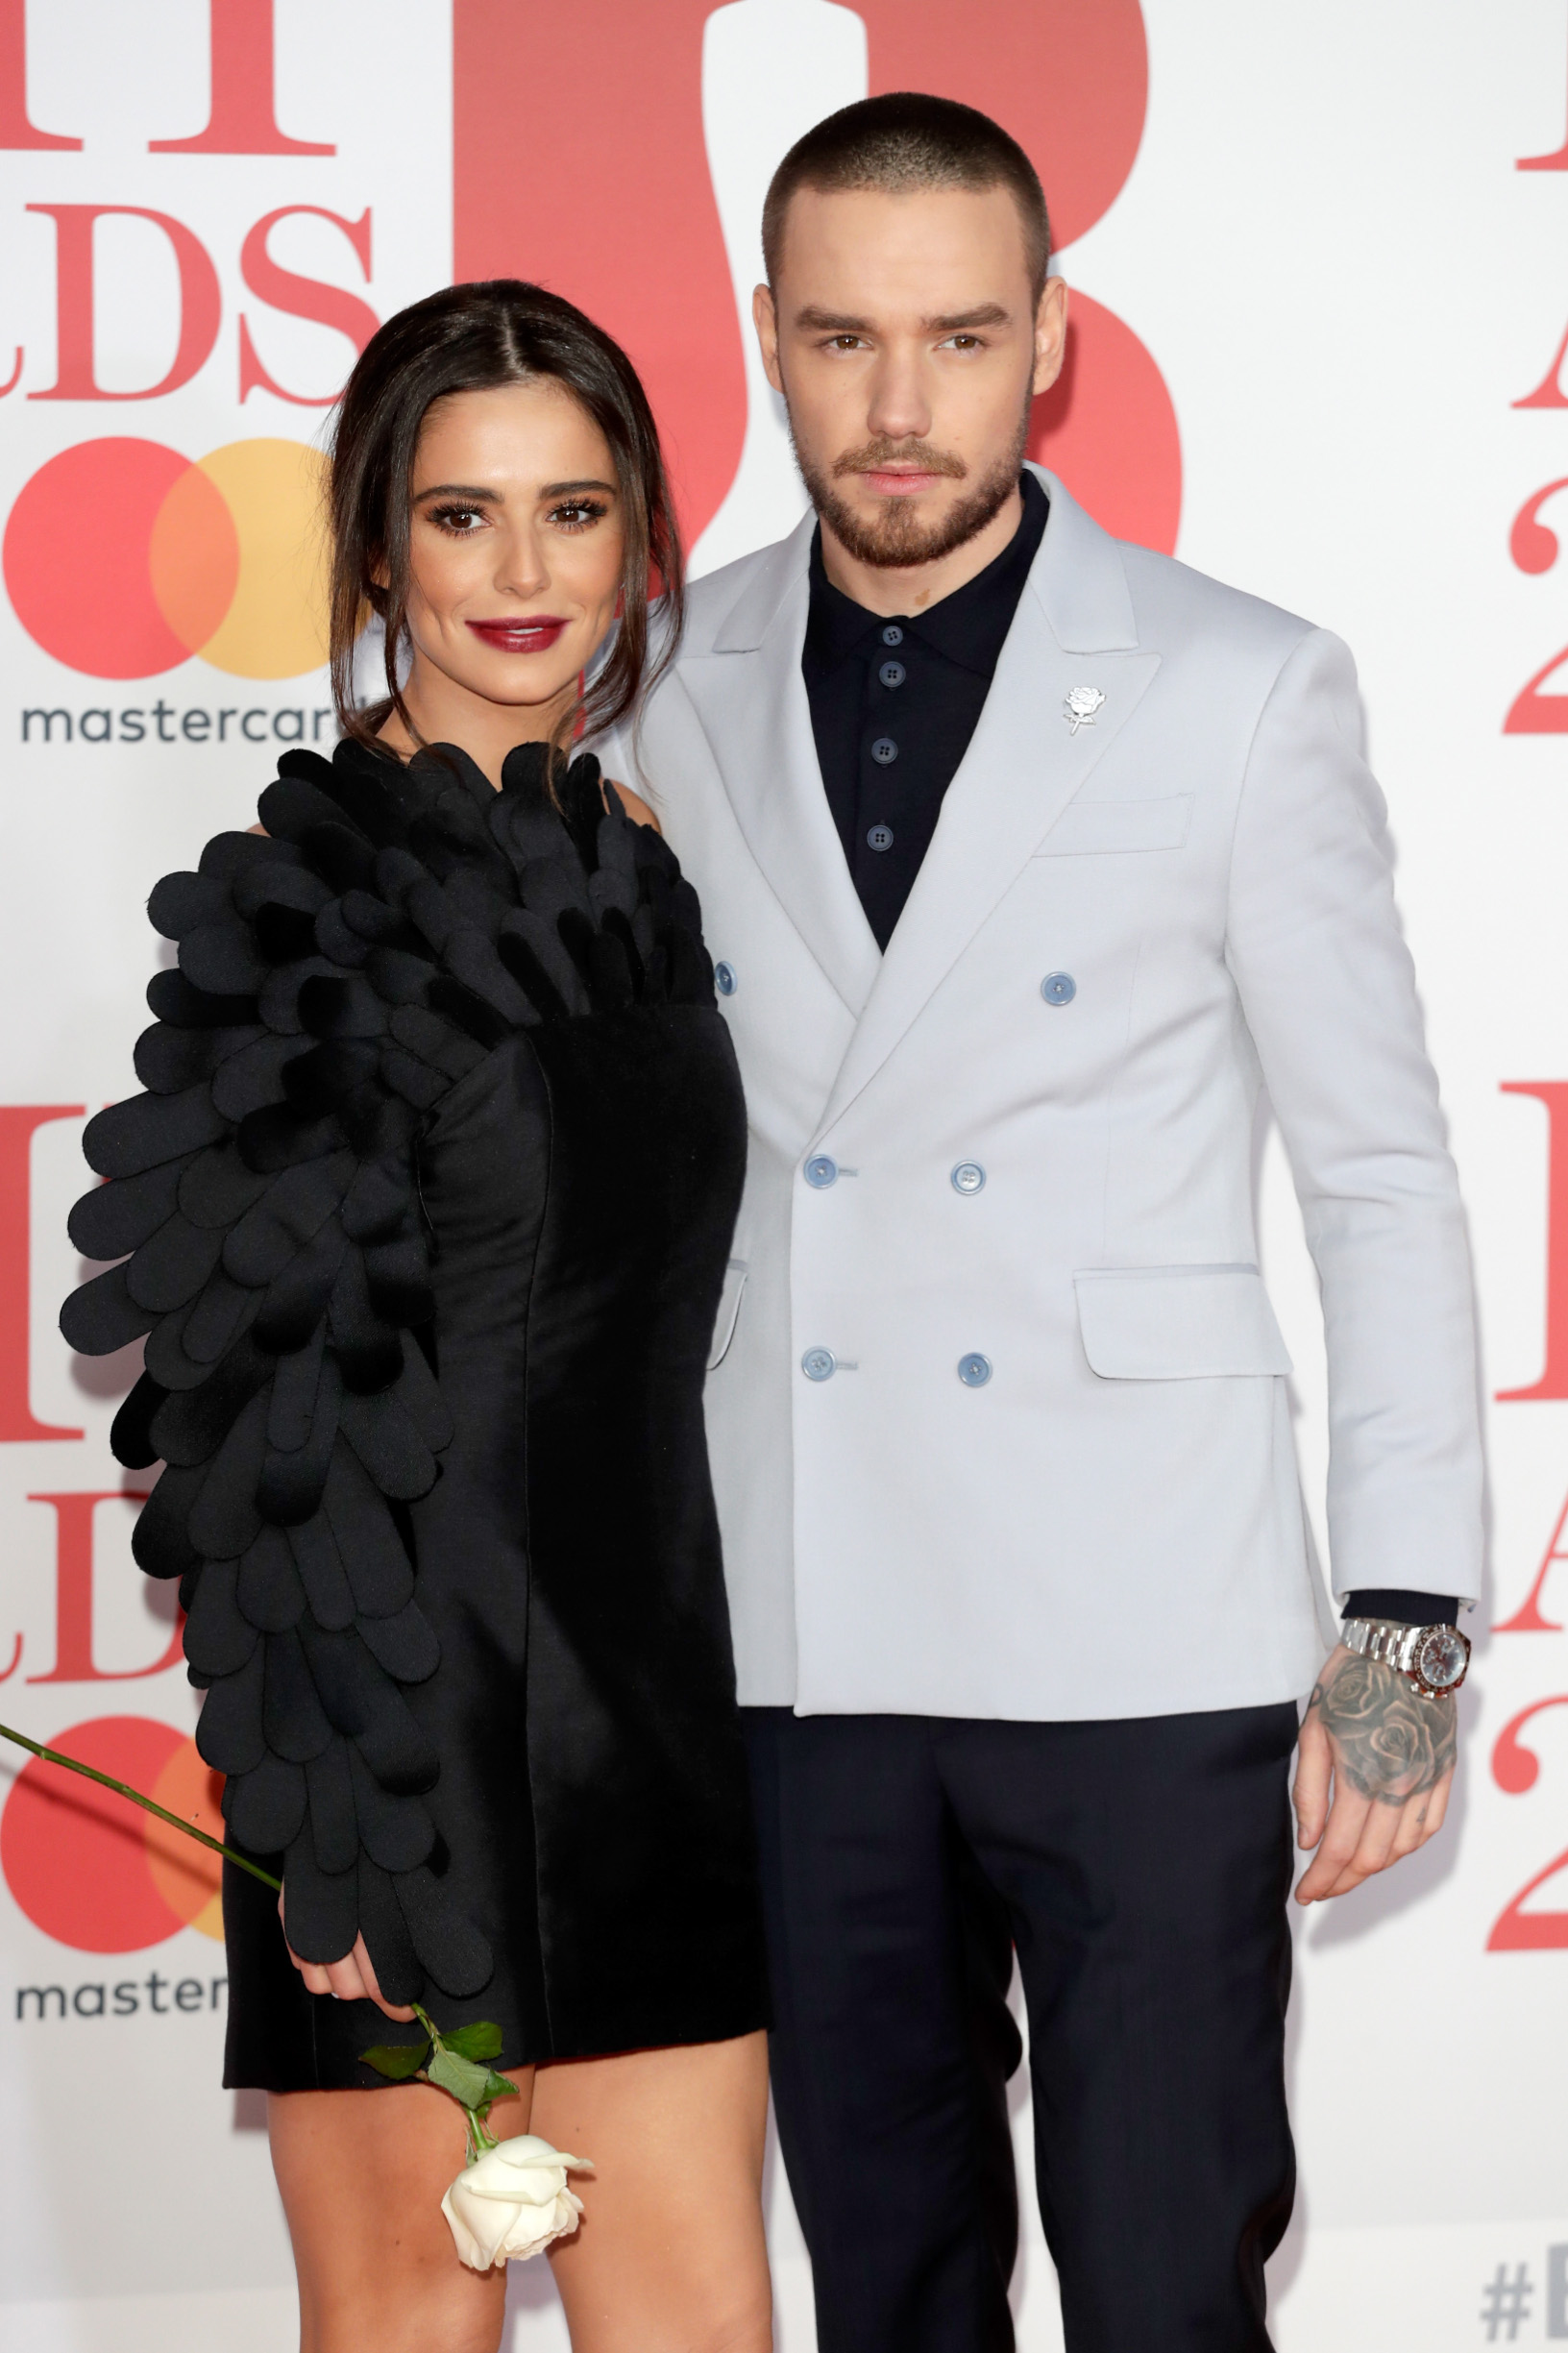 LONDON, ENGLAND - FEBRUARY 21:  *** EDITORIAL USE ONLY IN RELATION TO THE BRIT AWARDS 2018***  Cheryl and Liam Payne attend The BRIT Awards 2018 held at The O2 Arena on February 21, 2018 in London, England.  (Photo by John Phillips/Getty Images)